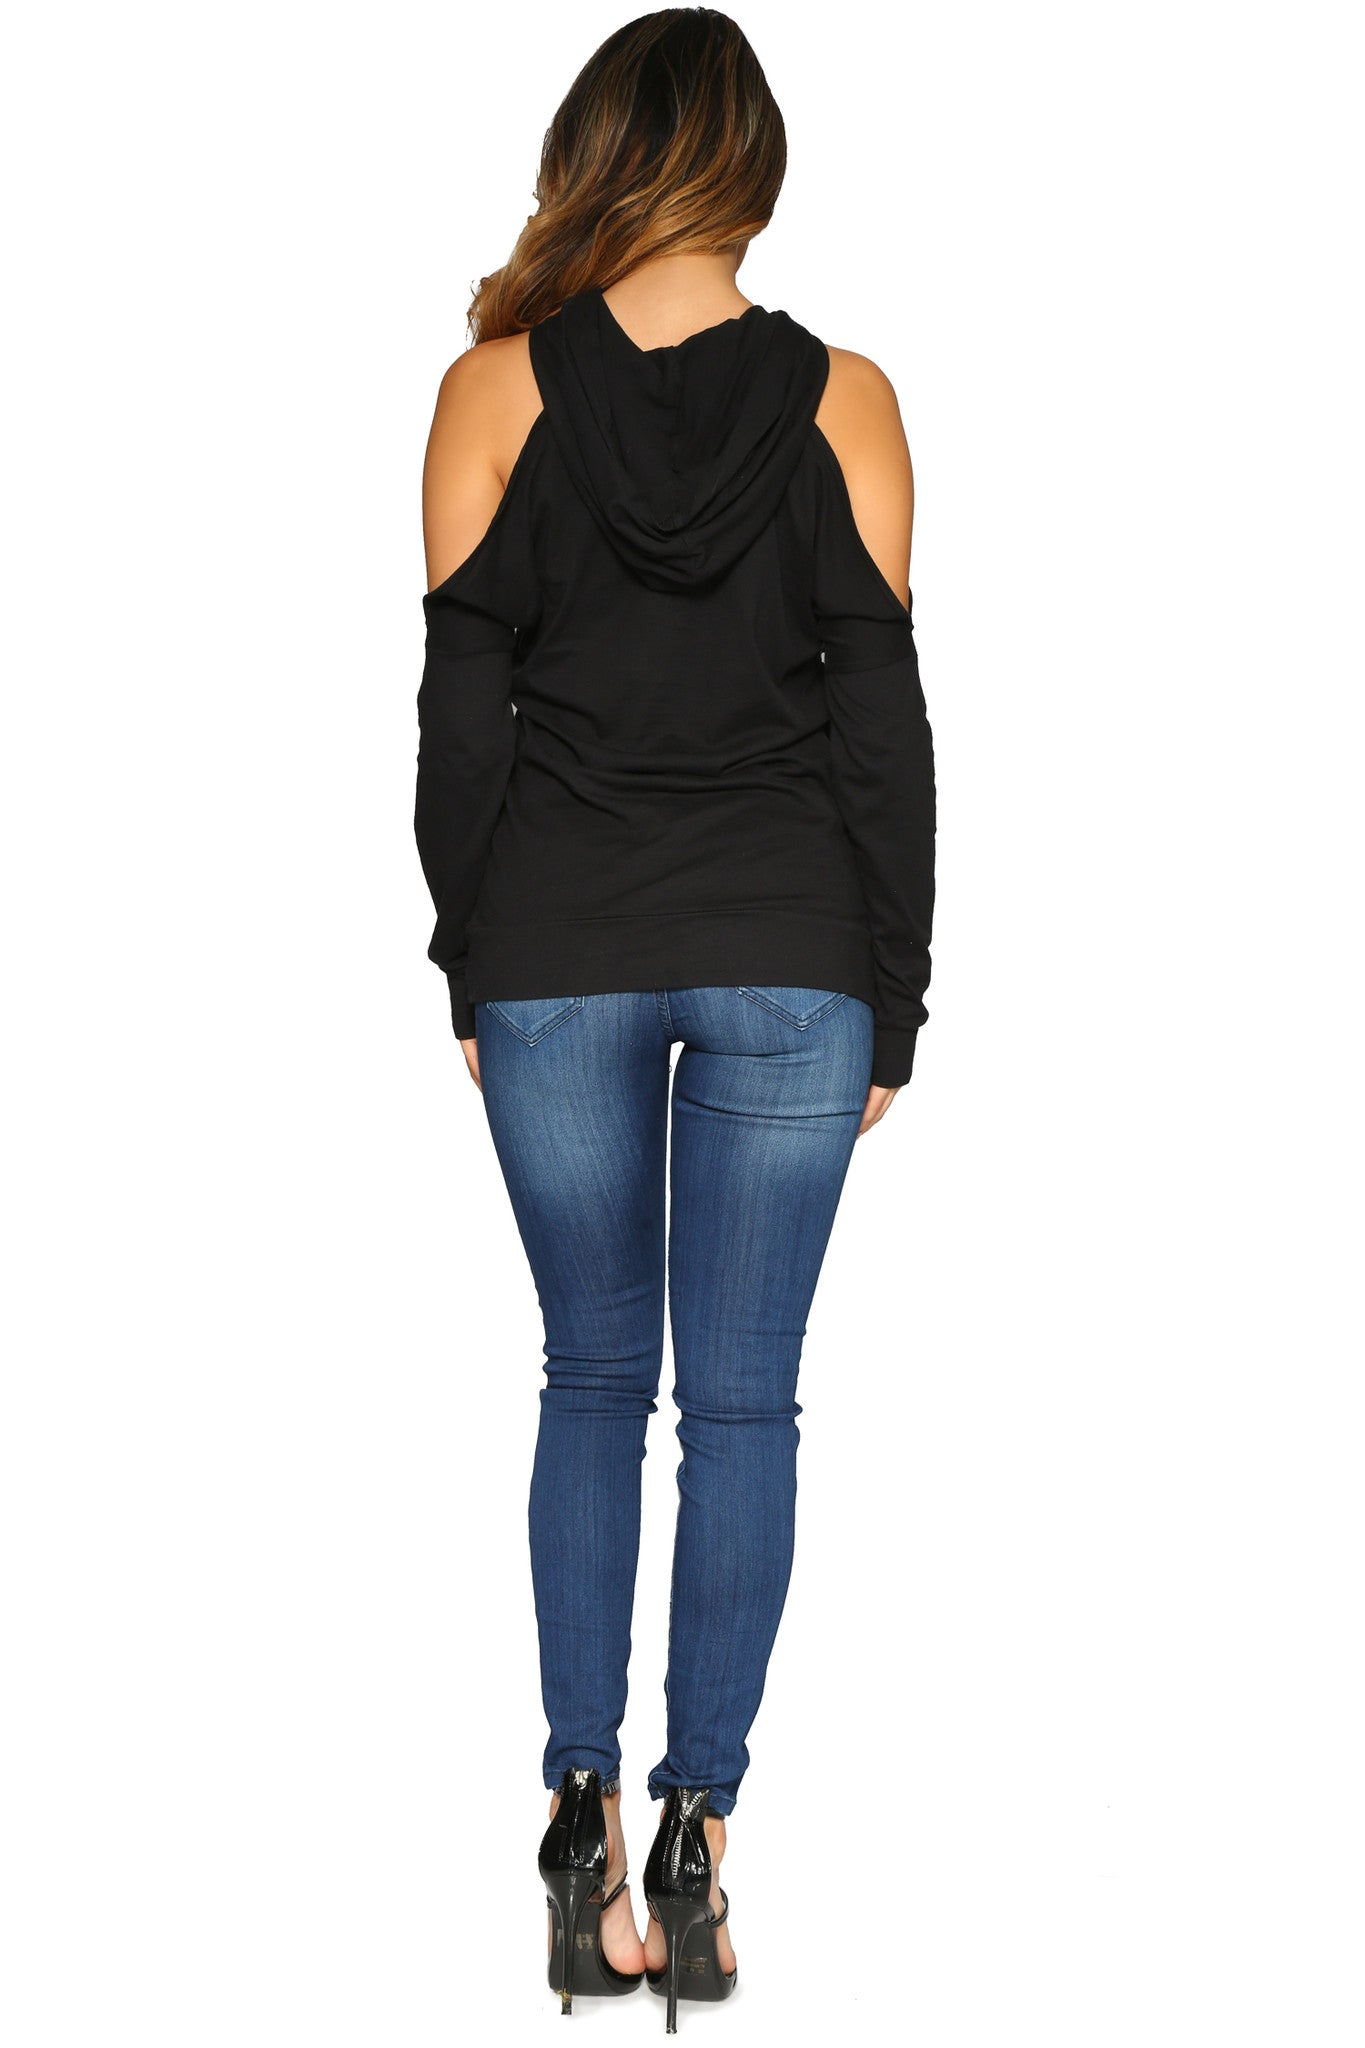 DIANDRA HOODIE BLACK GLAM ENVY BACK PROFILE